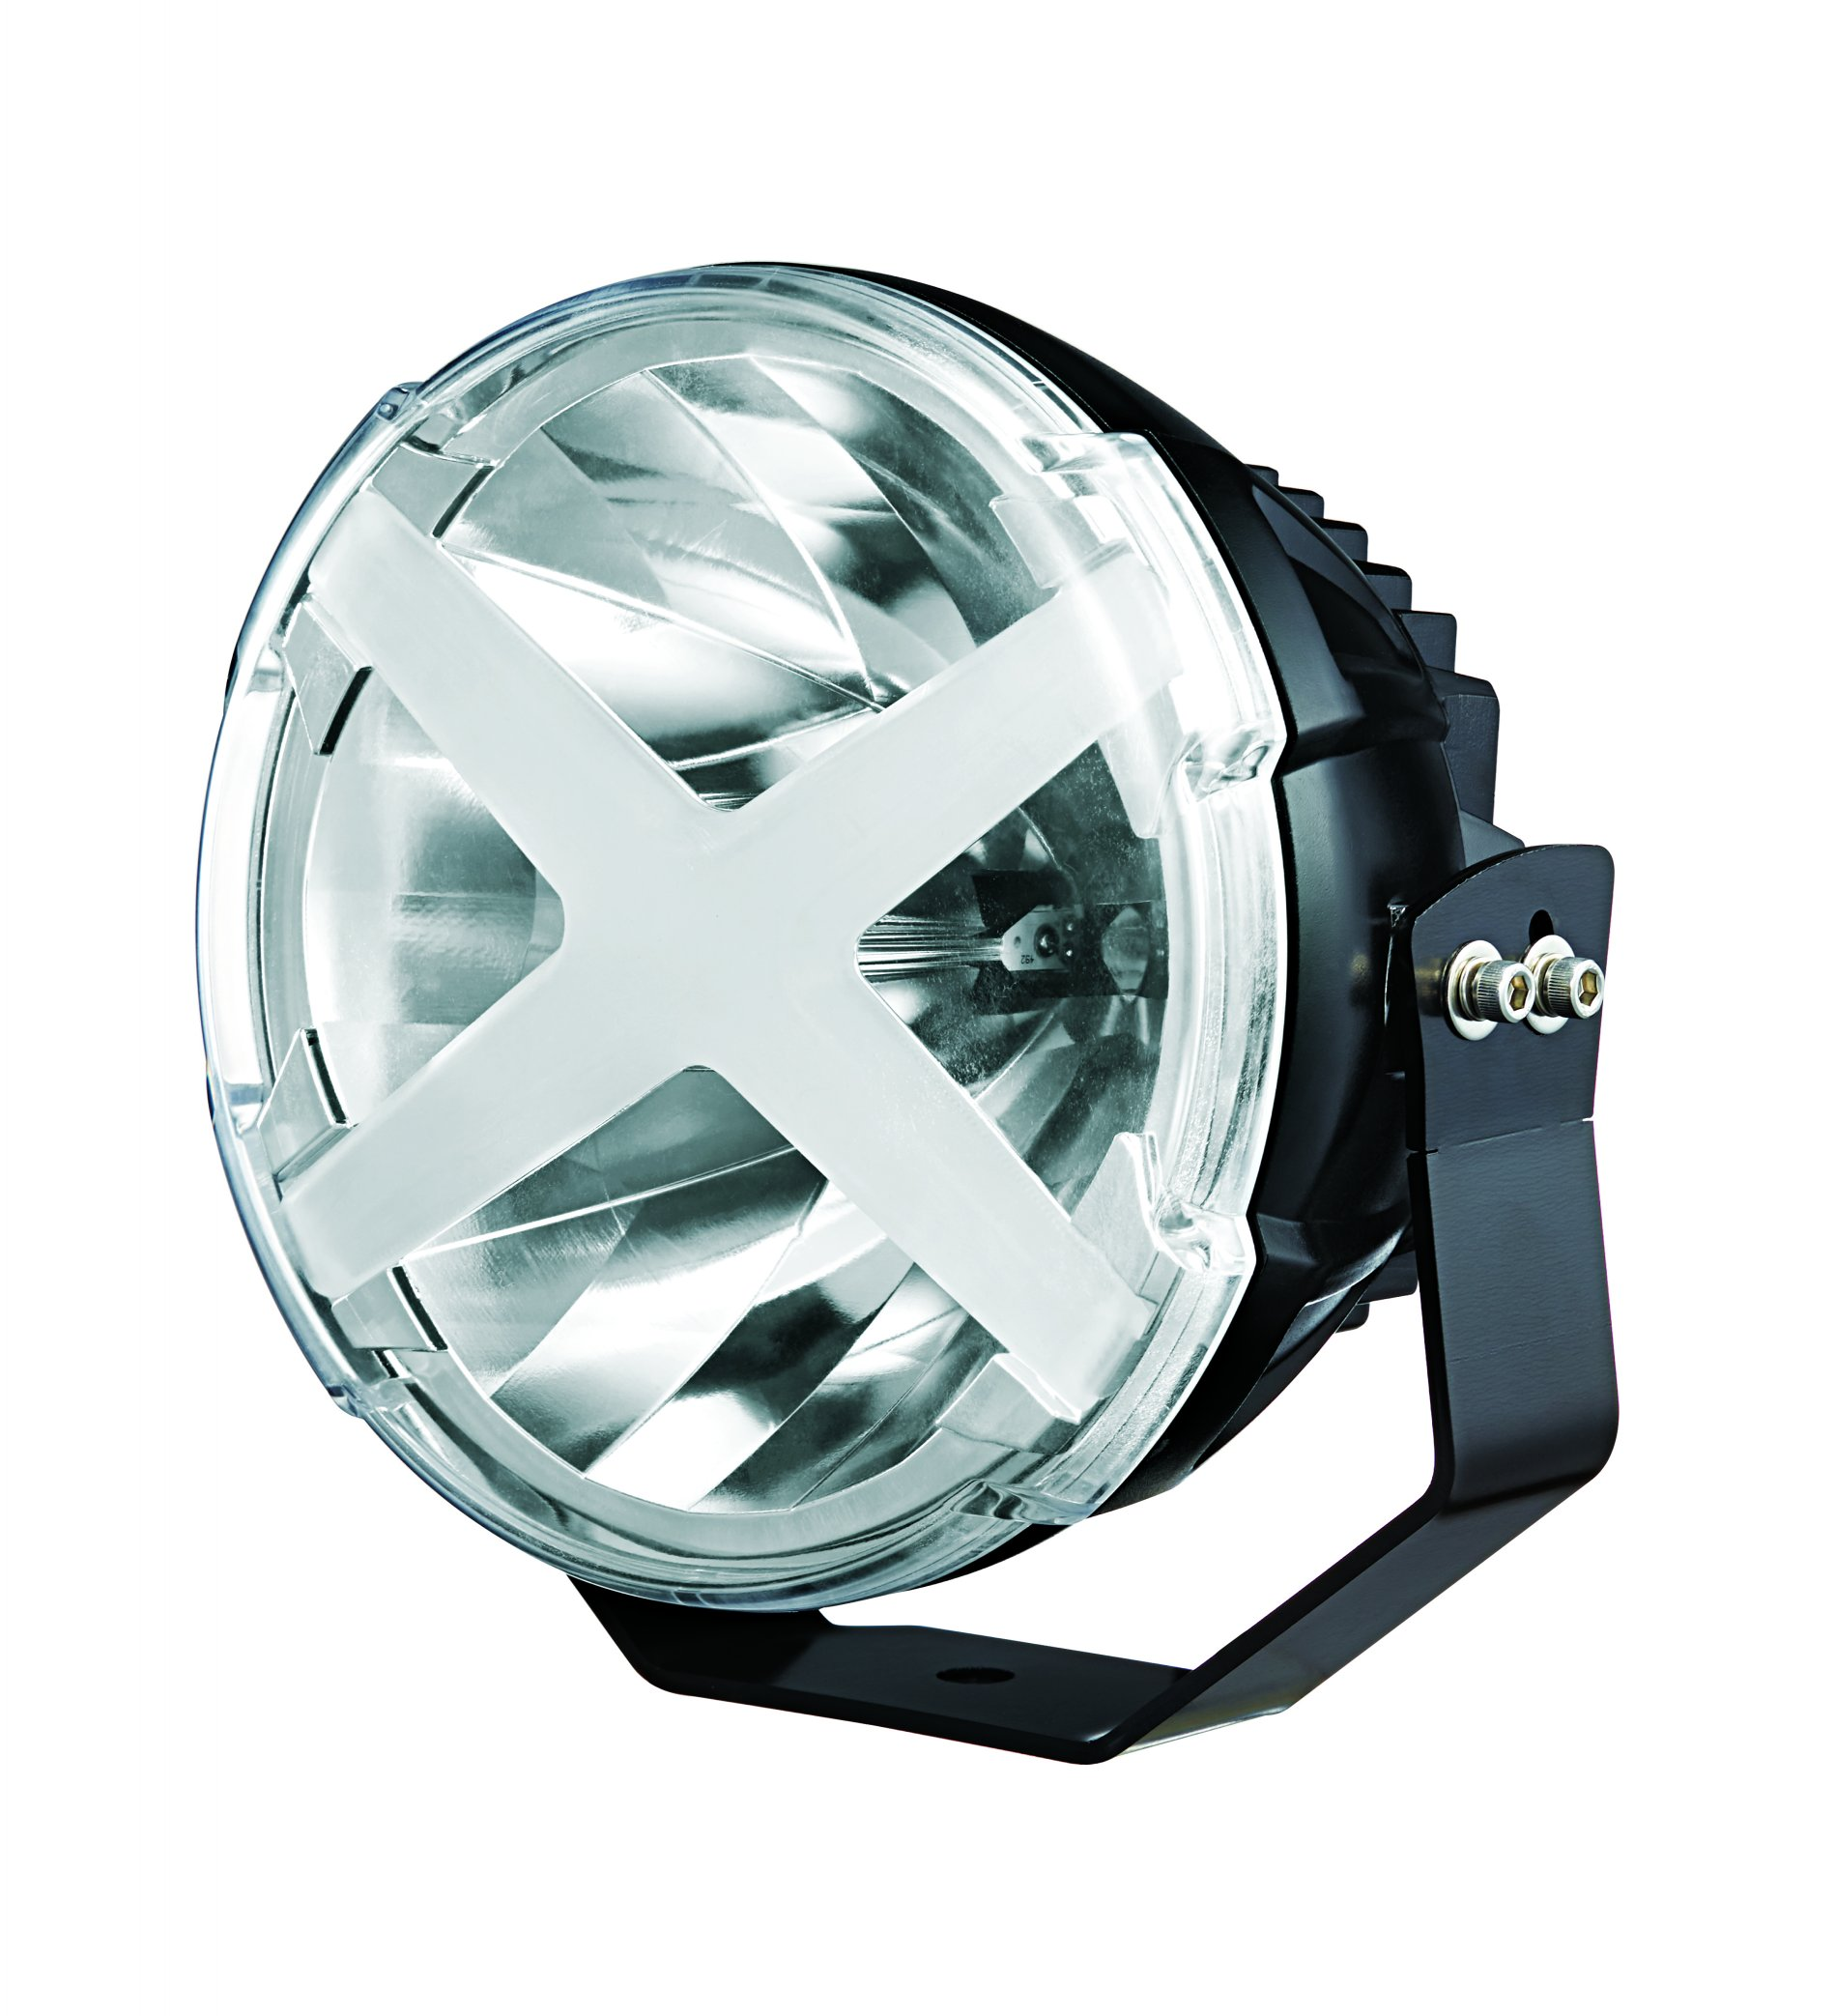 Bus LED Driving Lamp for Lighting Series made by NIKEN Vehicle Lighting Co., LTD. 首通股份有限公司 - MatchSupplier.com